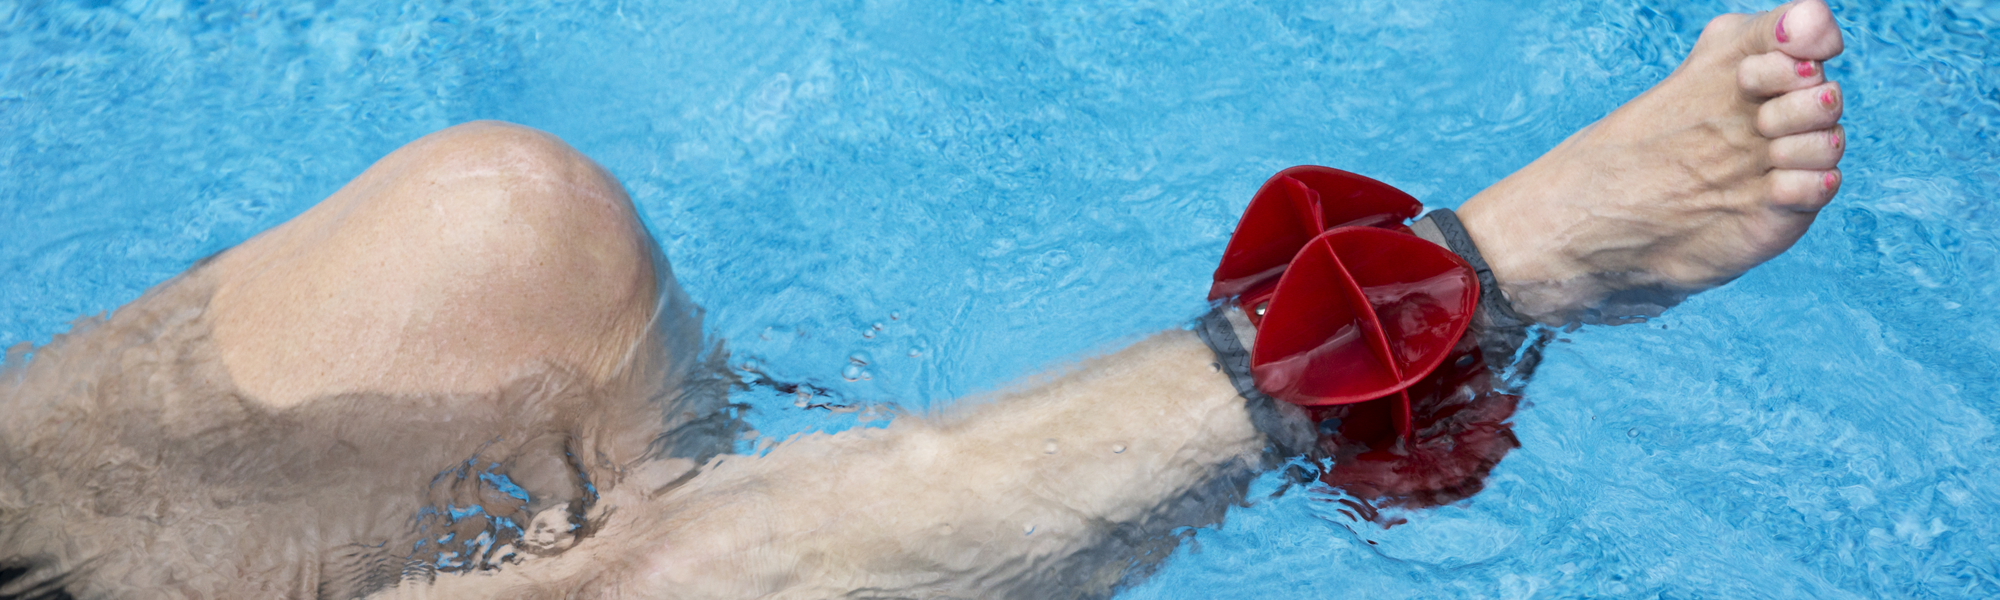 Person wearing a weight around ankle during aquatic therapy